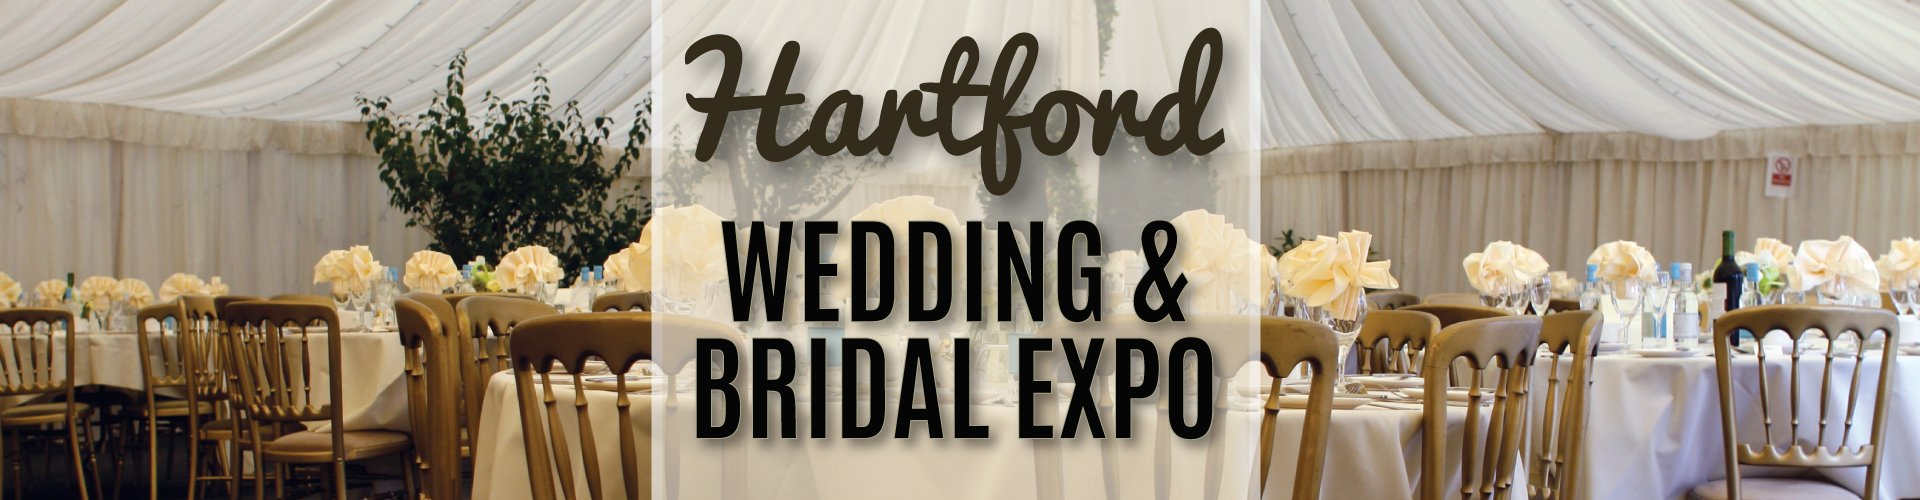 Hartford Wedding & Bridal Expo